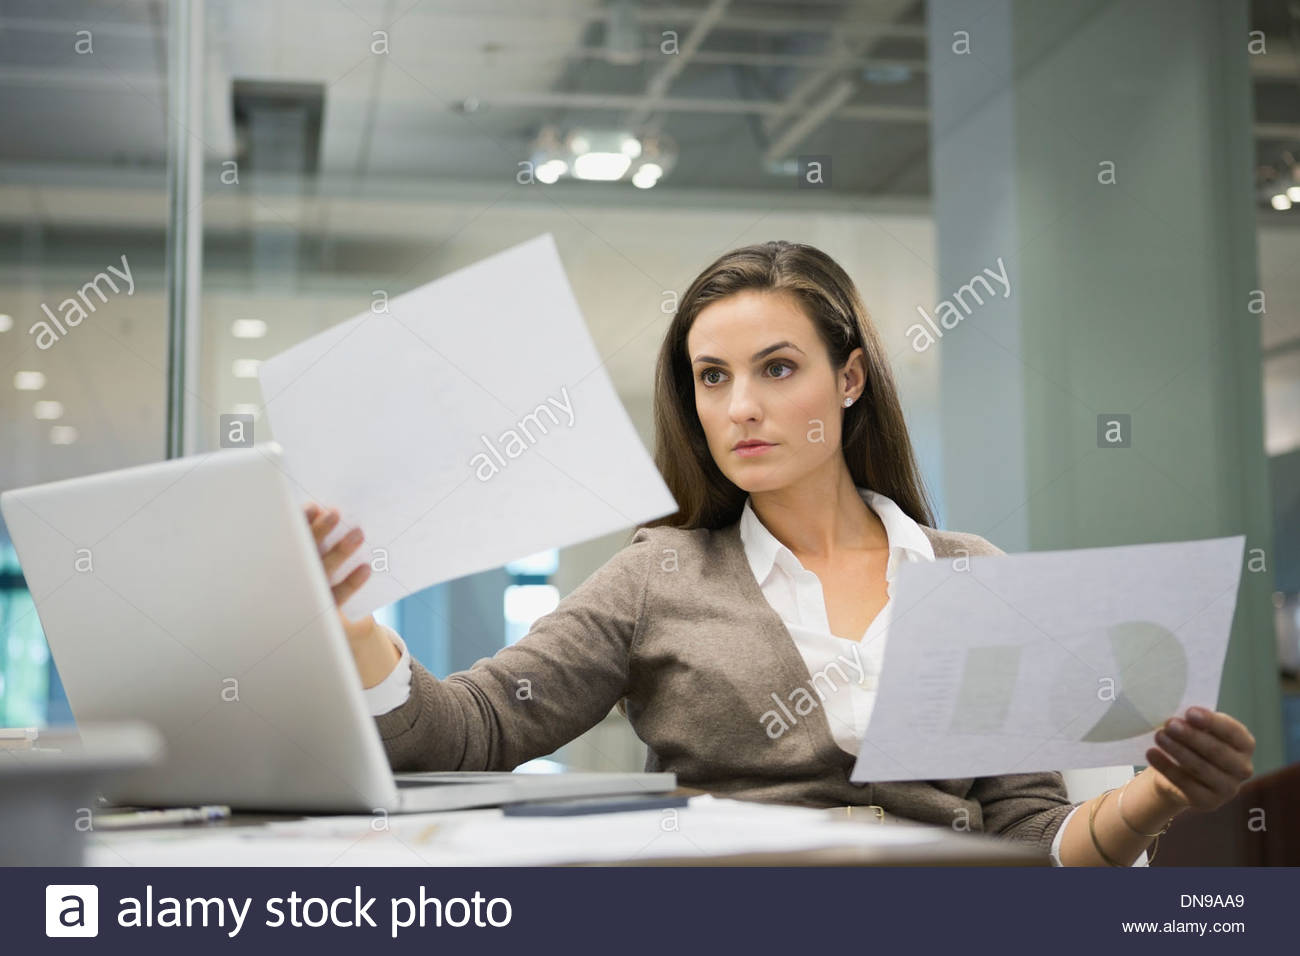 Businesswoman analyzing documents in office - Stock Image